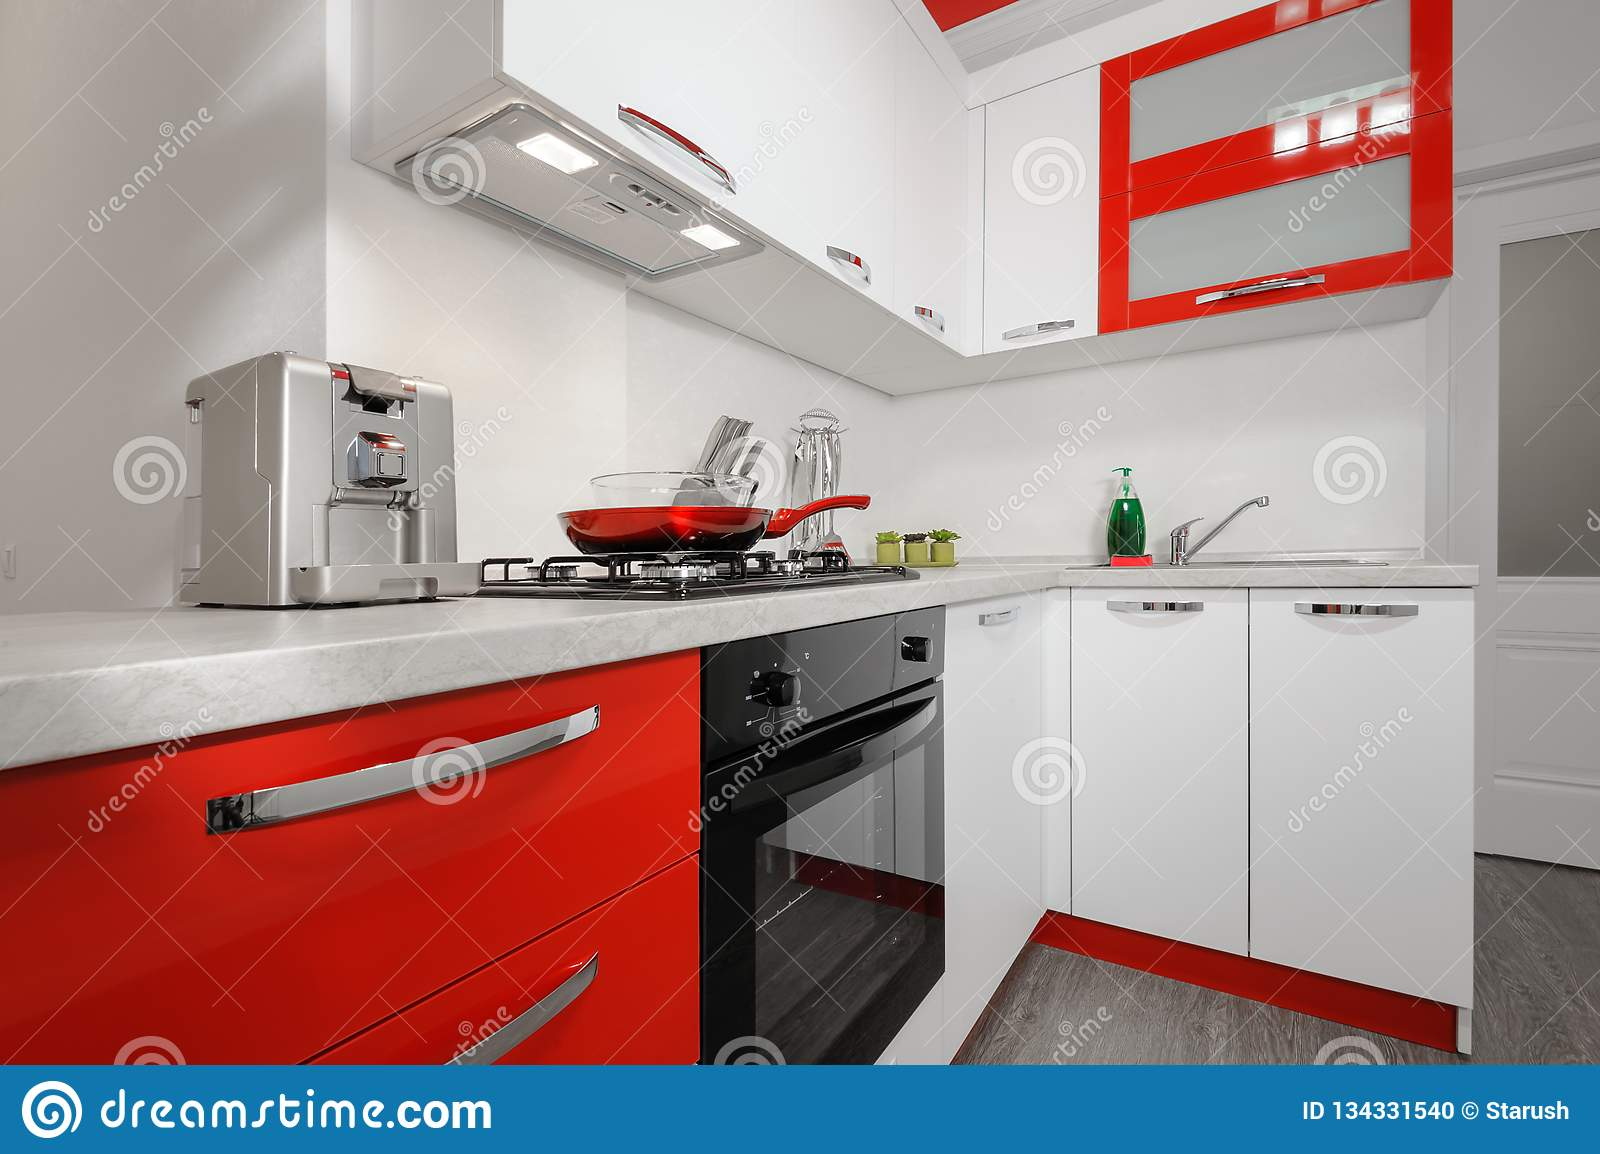 Modern Red And White Kitchen Interior Stock Photo   Image of ...